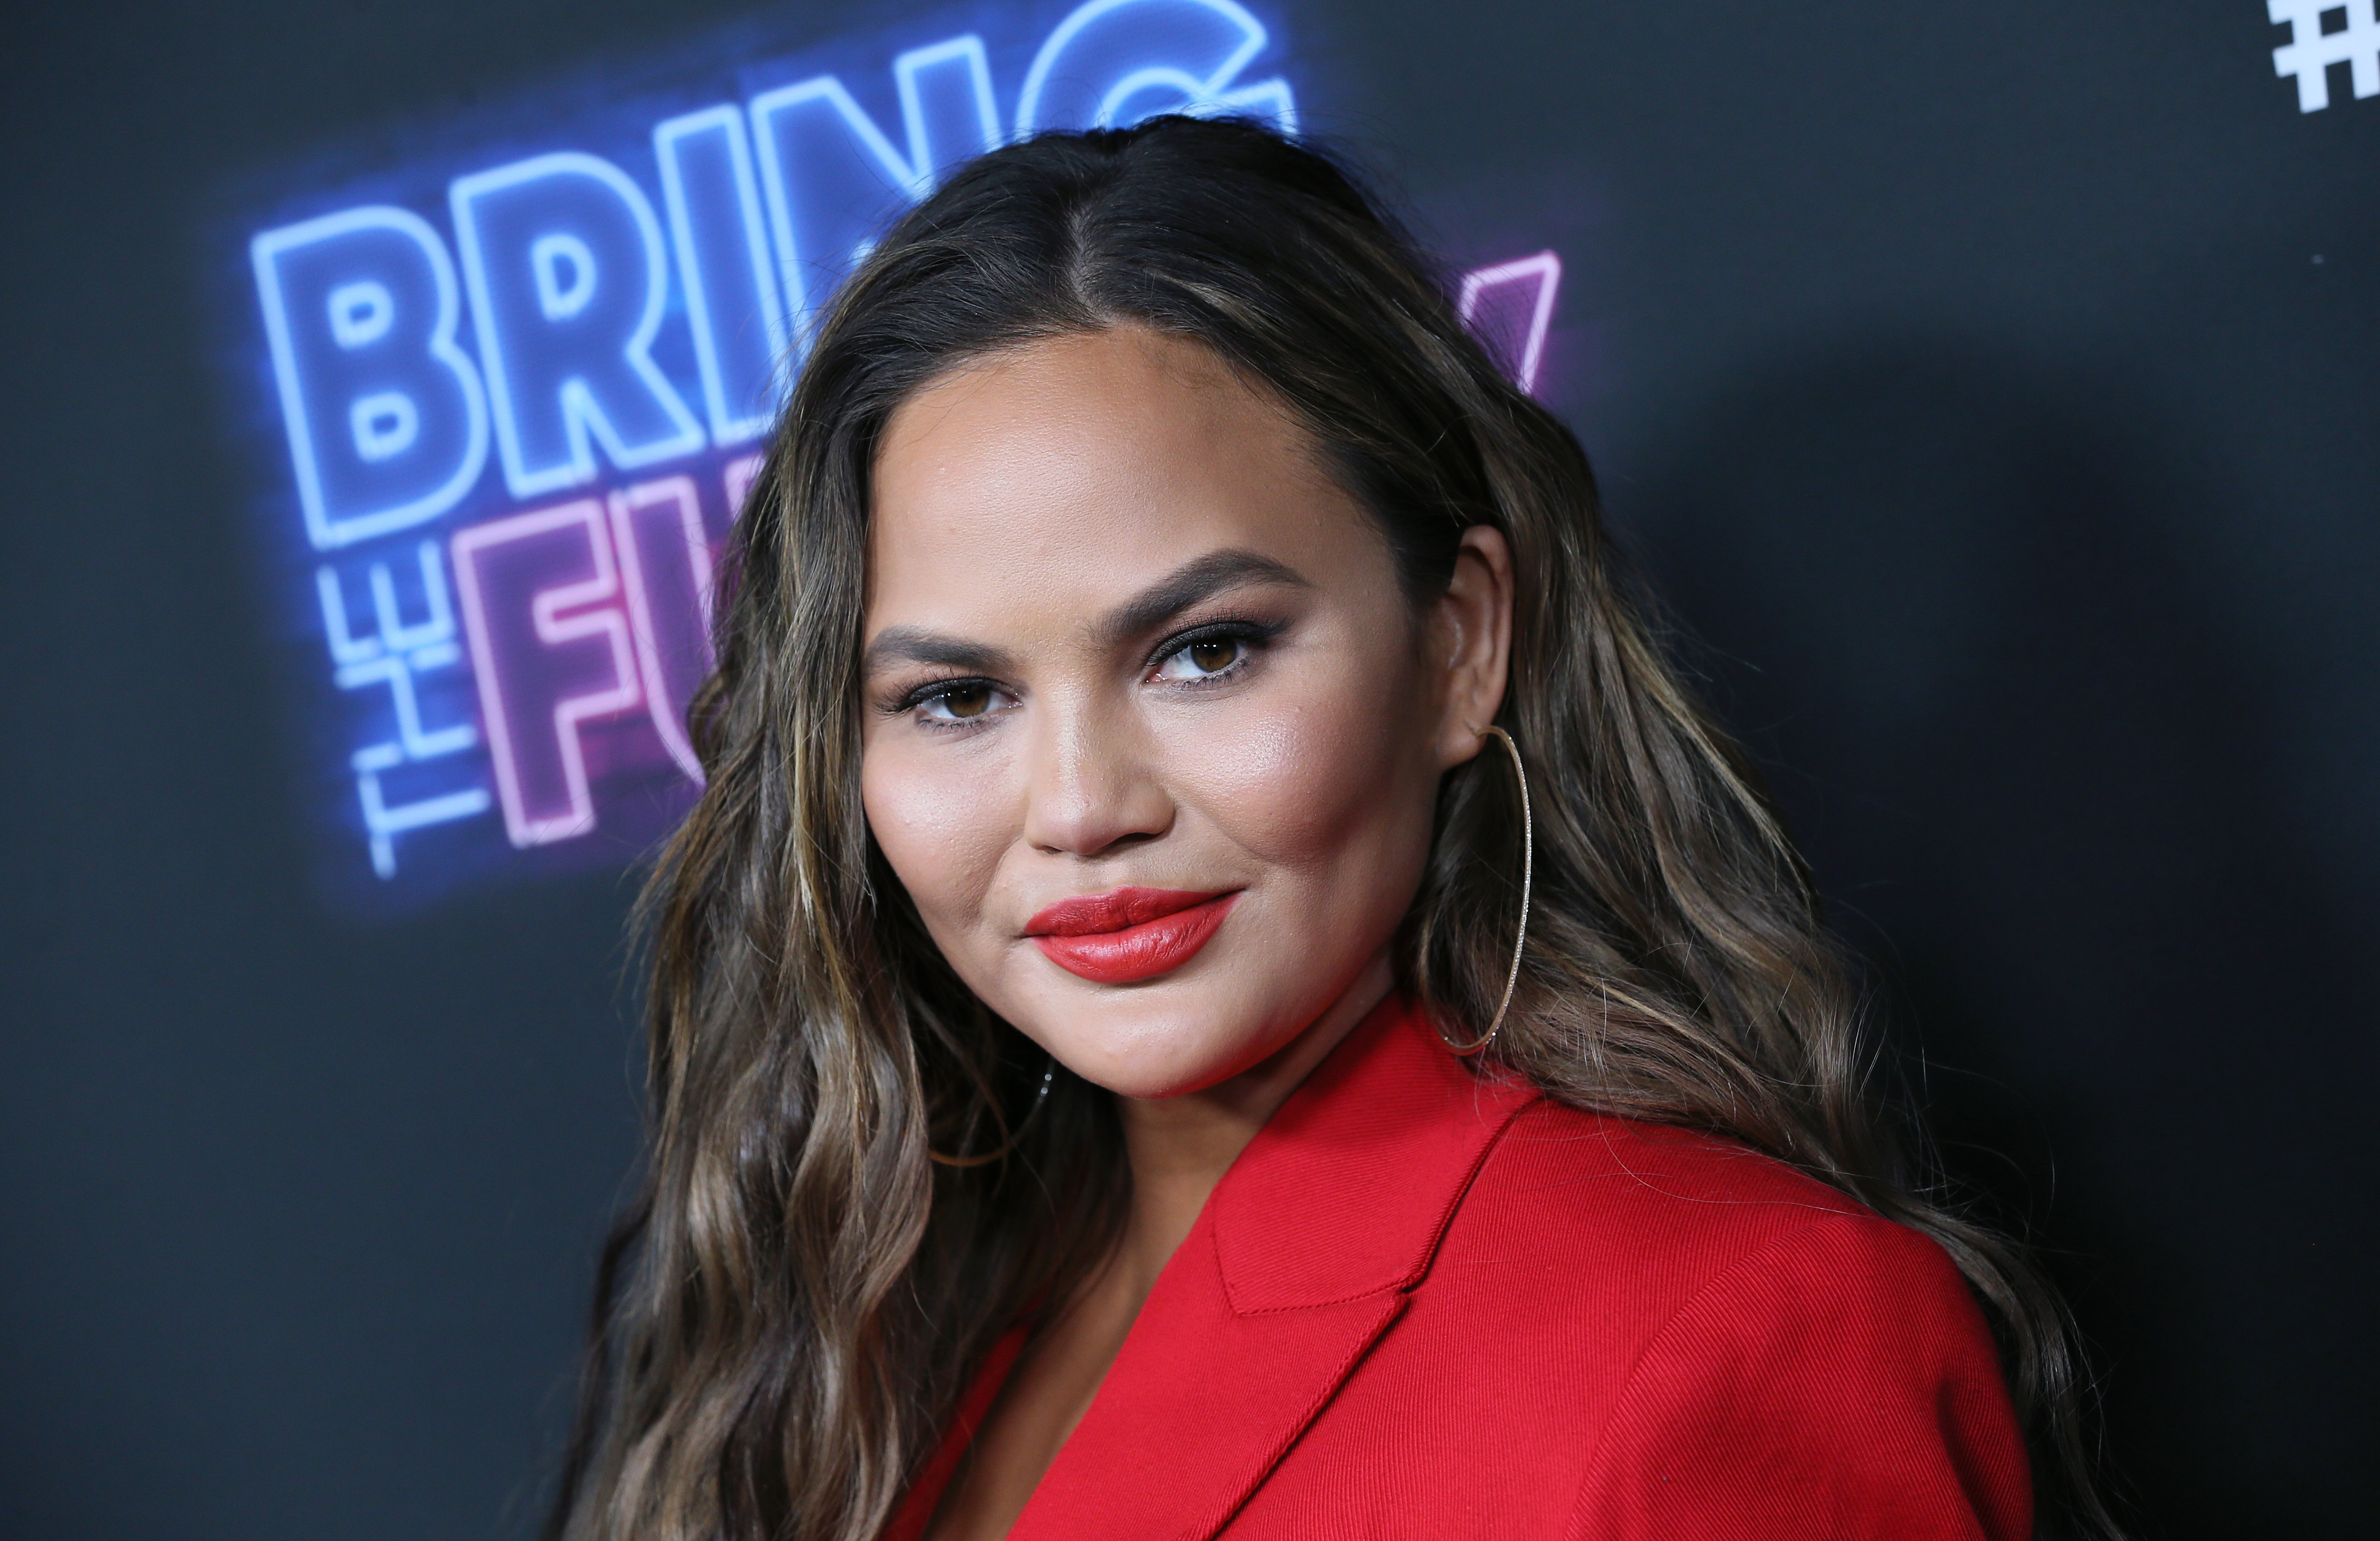 """Chrissy Teigen at the premiere of """"Bring The Funny"""" in June 2019. 